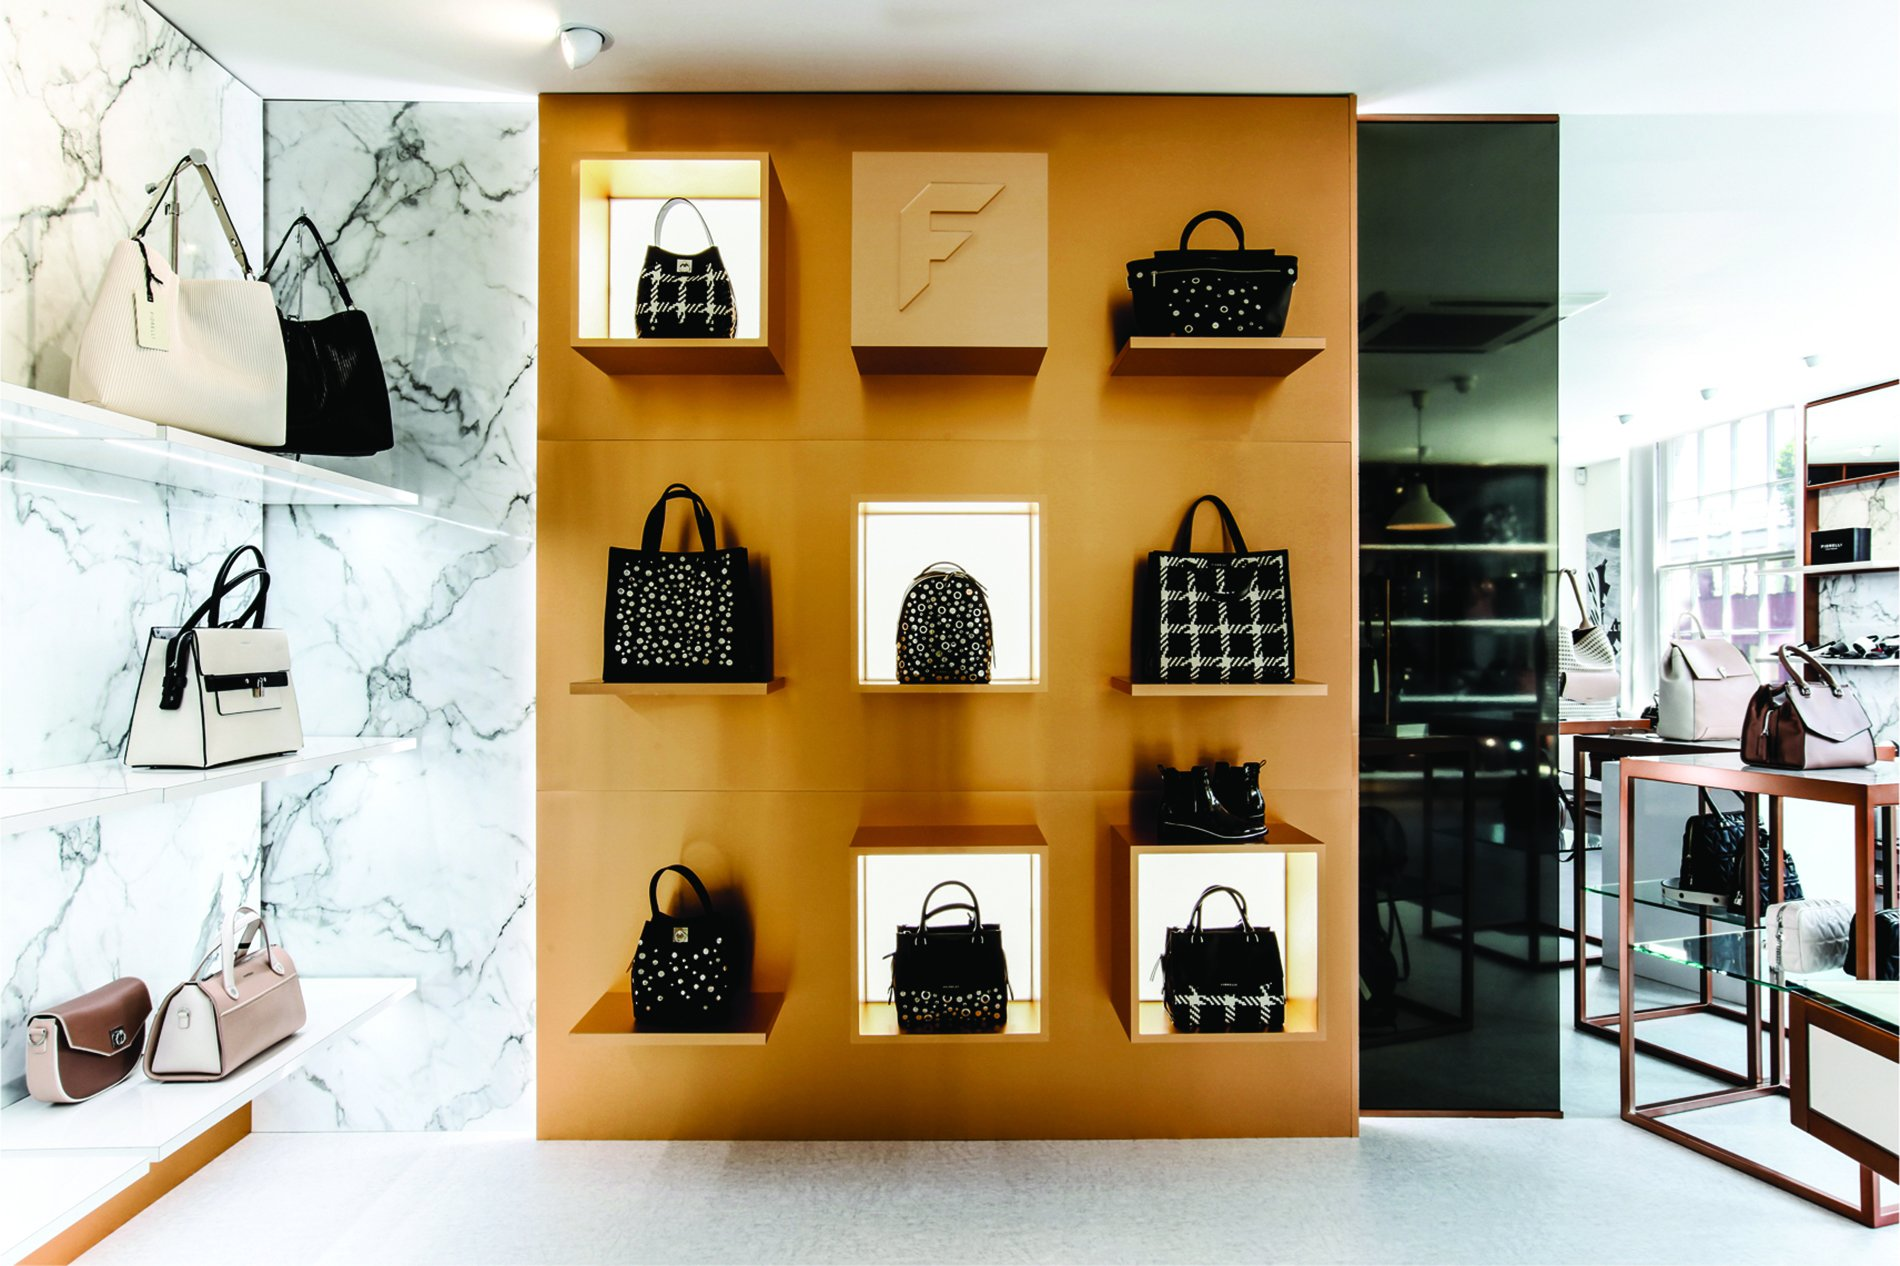 Handbag display in Fiorelli showroom